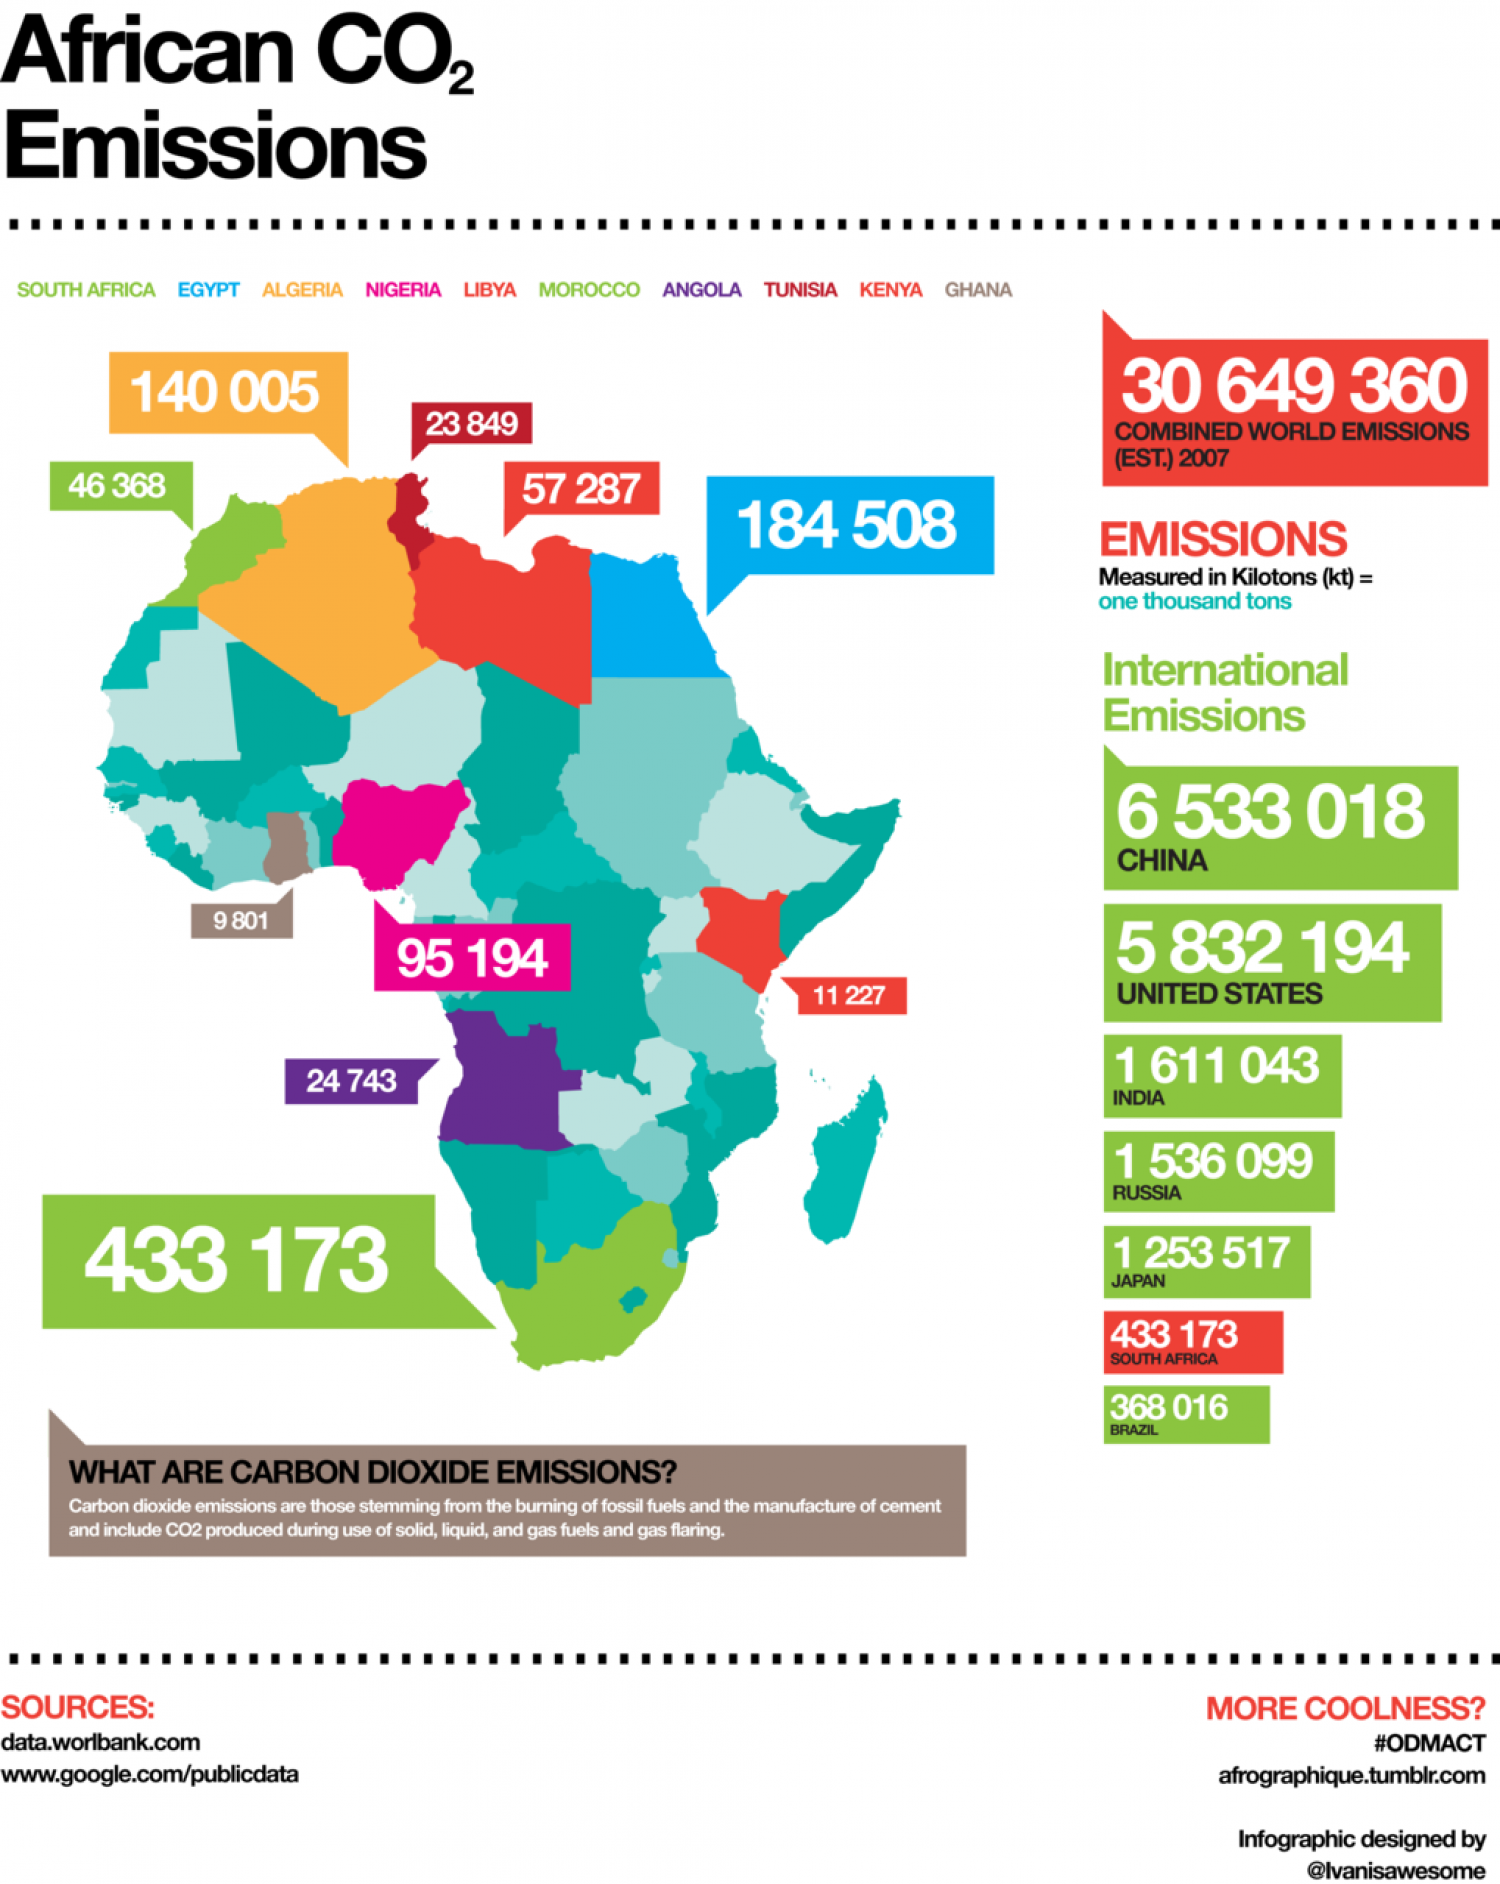 African CO2 Emissions  Infographic